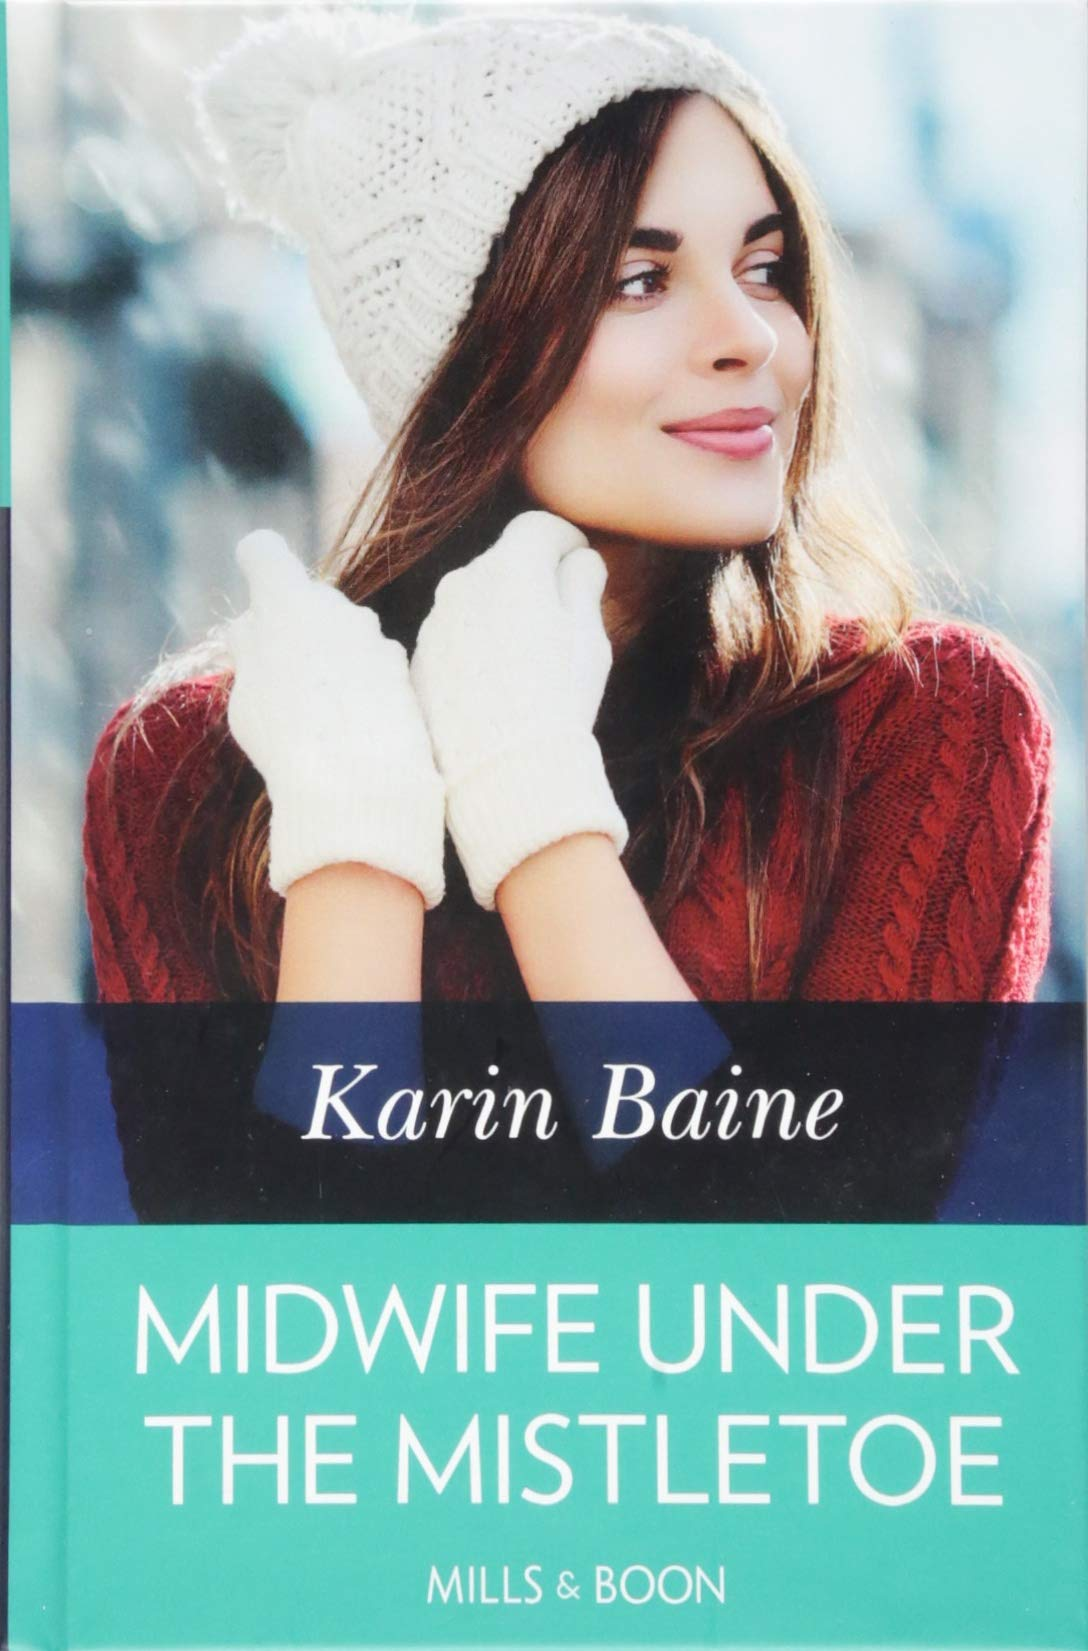 Midwife Under The Mistletoe by Mills and Boon